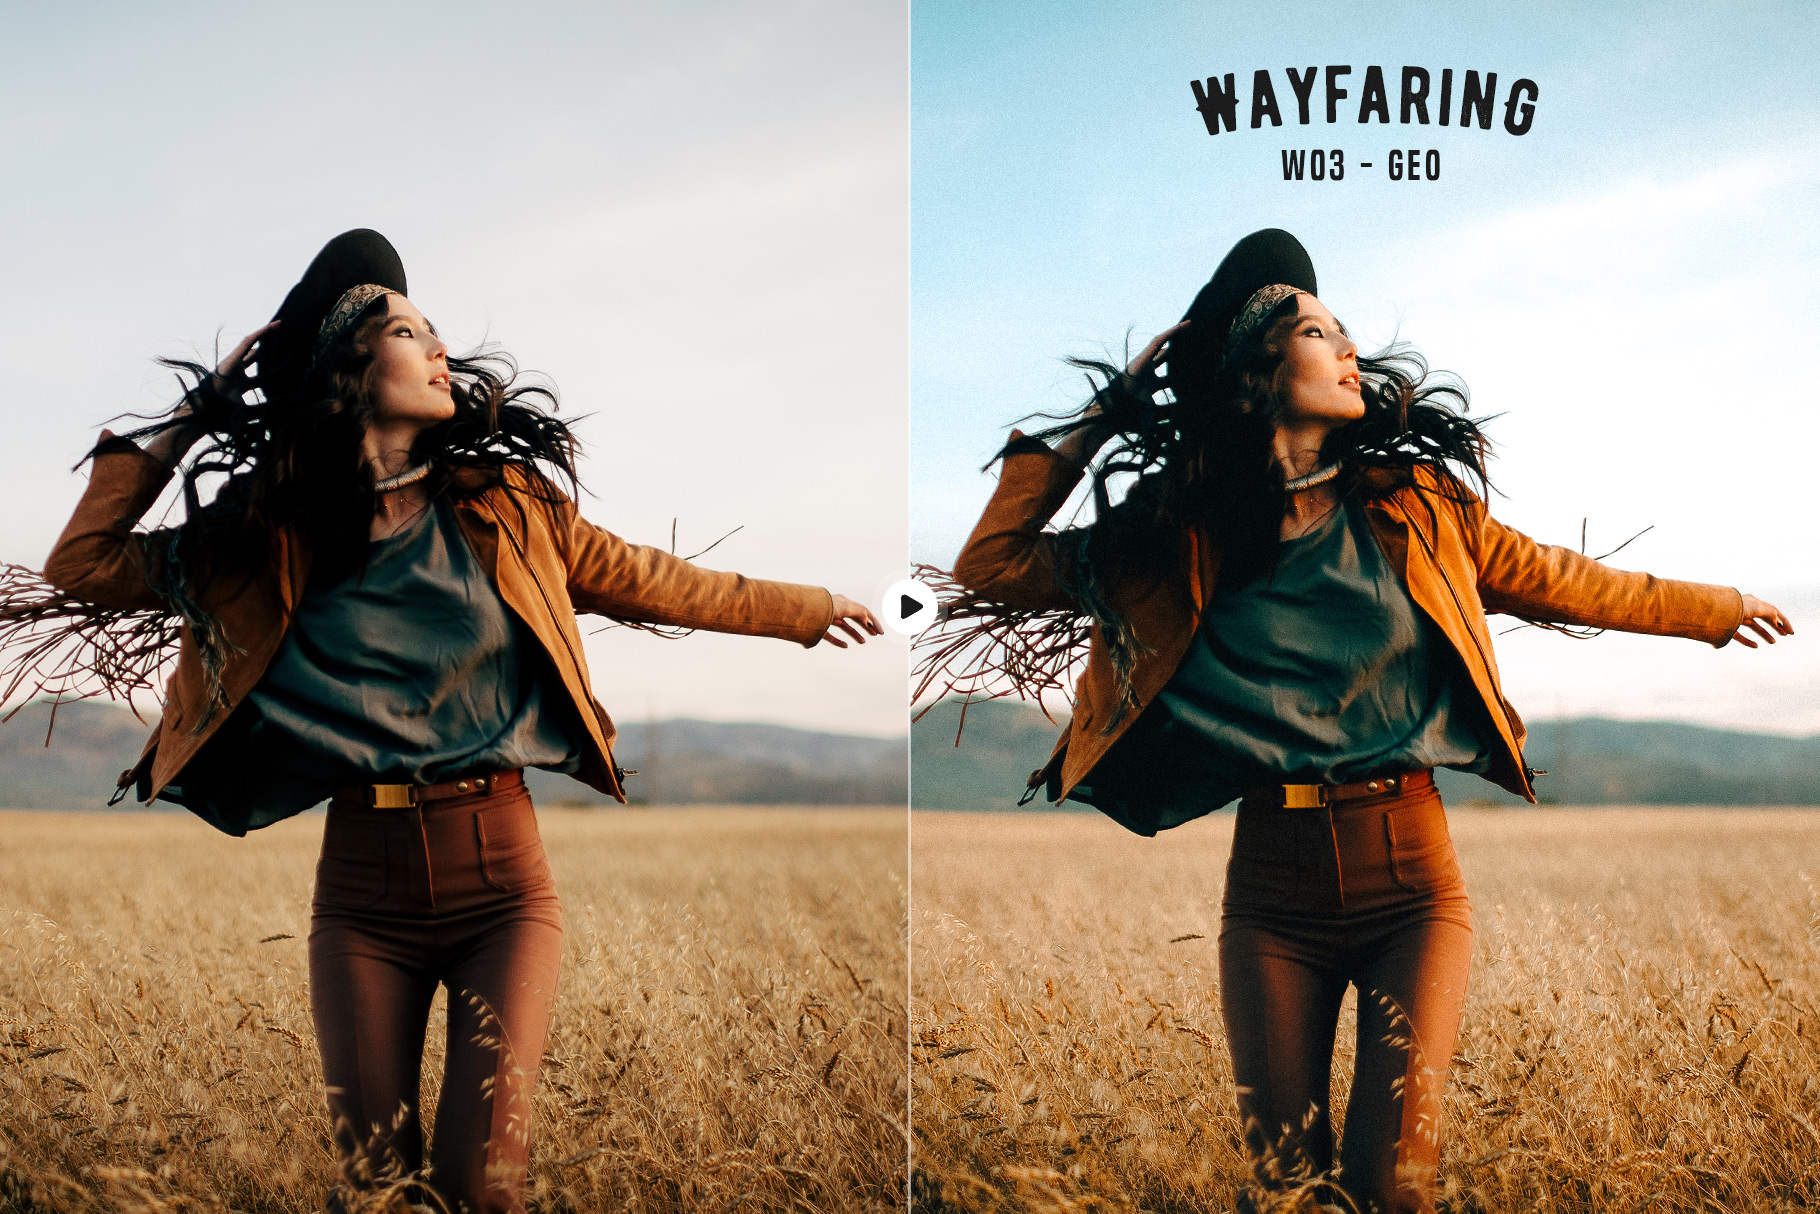 wayfaring_preview_03